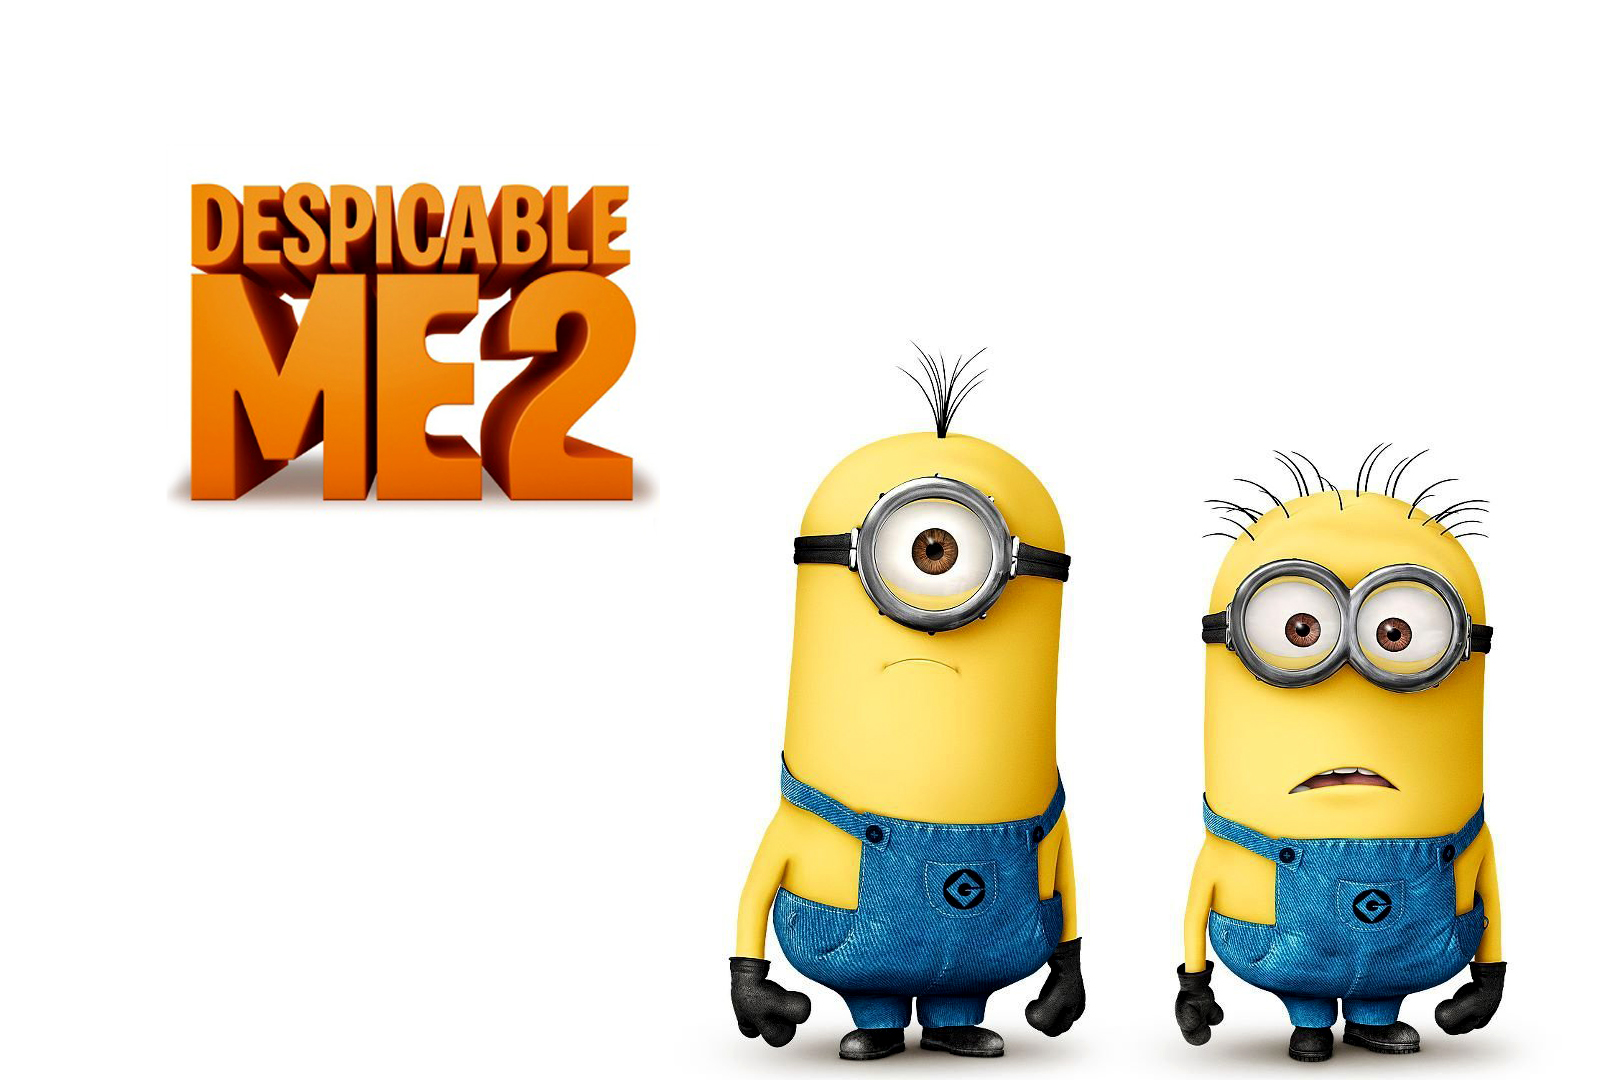 Despicable Me 2 Animation Movie 2013 HD Wallpapers HQ ...